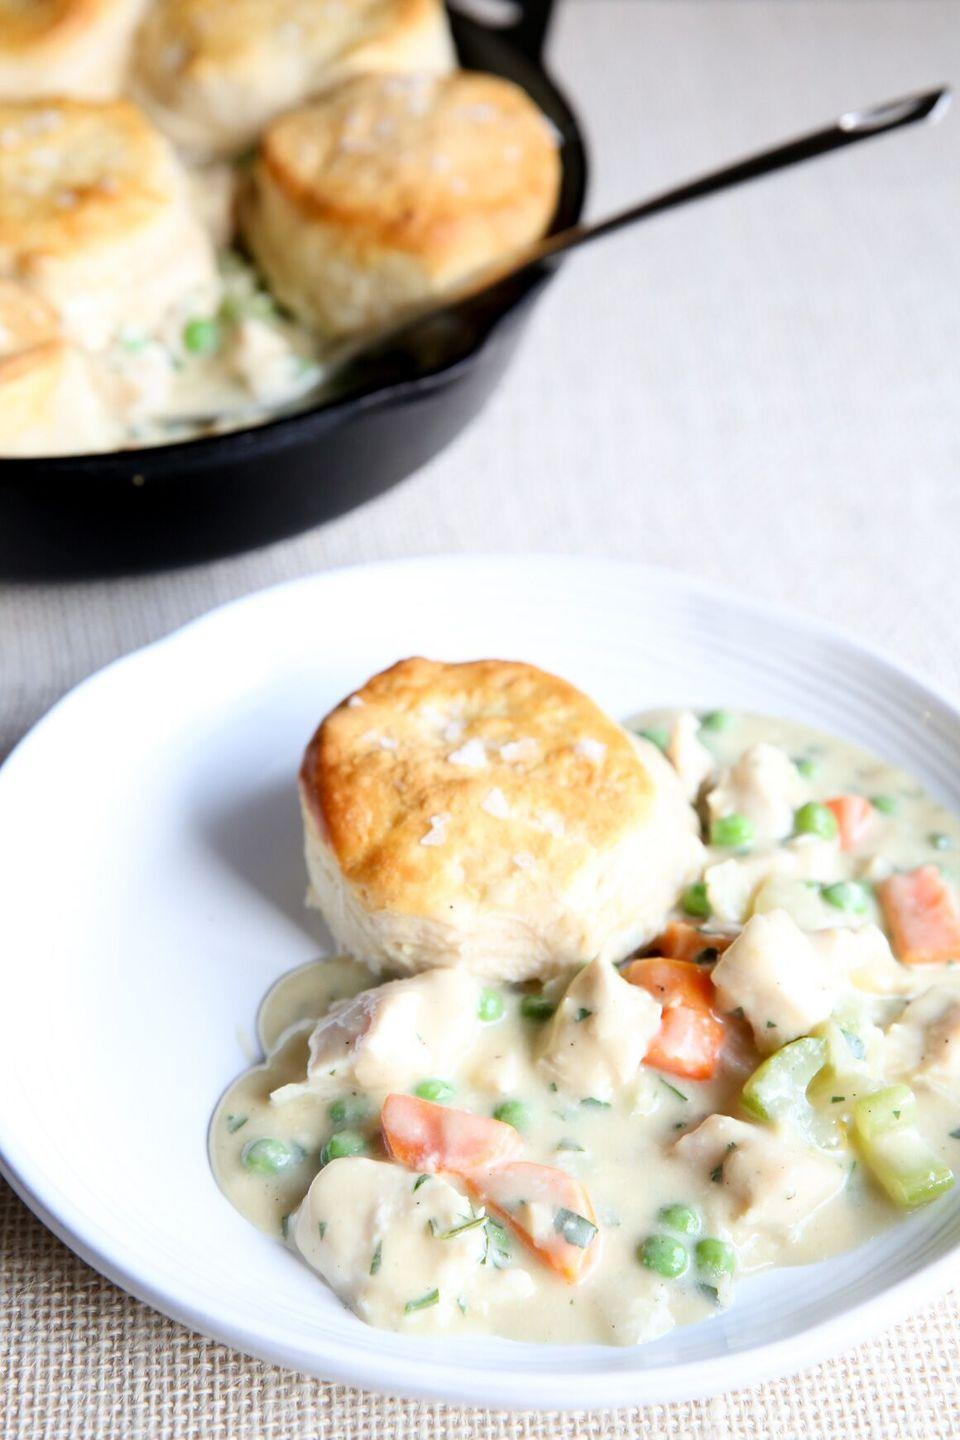 """<p>Biscuits>puff pastry.</p><p>Get the recipe from <a href=""""/cooking/recipe-ideas/recipes/a50857/skillet-biscuit-pot-pie-recipe/"""" data-ylk=""""slk:Delish"""" class=""""link rapid-noclick-resp"""">Delish</a>.</p><p><strong><a class=""""link rapid-noclick-resp"""" href=""""https://www.amazon.com/Homwe-Professional-Silicone-Oven-Mitt/dp/B00WUDQ61W/?tag=syn-yahoo-20&ascsubtag=%5Bartid%7C1782.g.1467%5Bsrc%7Cyahoo-us"""" rel=""""nofollow noopener"""" target=""""_blank"""" data-ylk=""""slk:BUY NOW"""">BUY NOW</a><em> Silicone Oven Mitt, $12, </em><em><span class=""""redactor-unlink"""">amazon.com</span></em></strong></p>"""